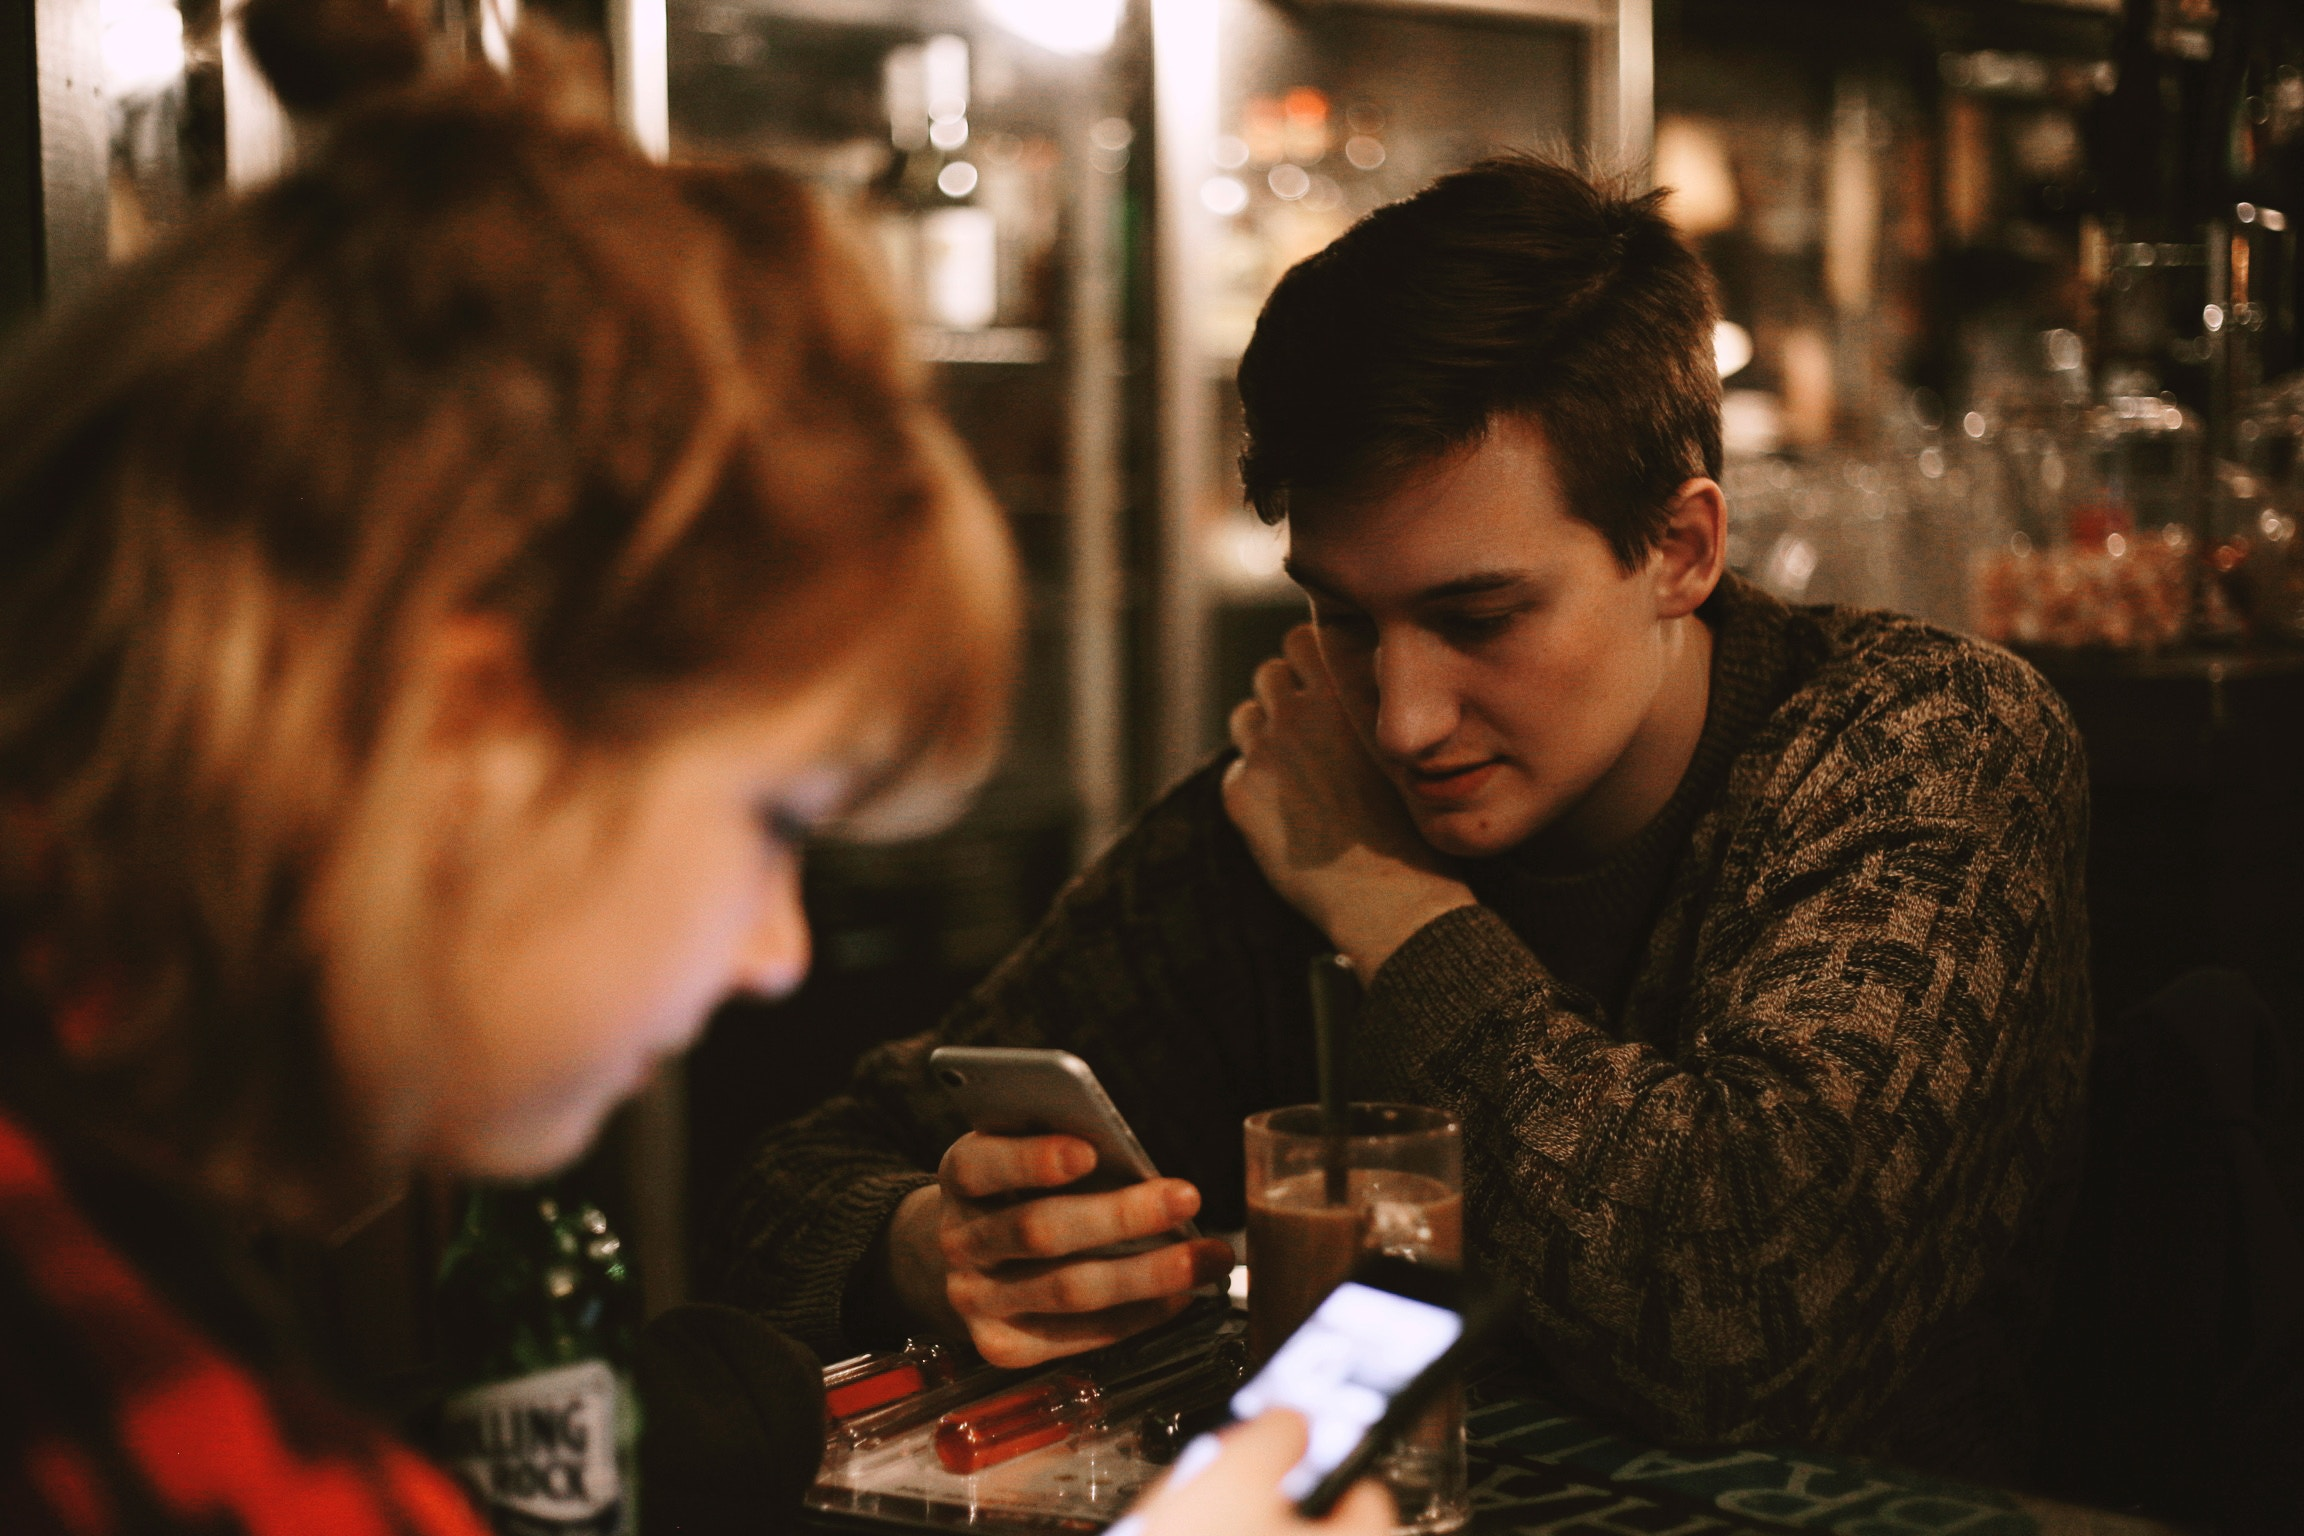 couple using smartphone in bar